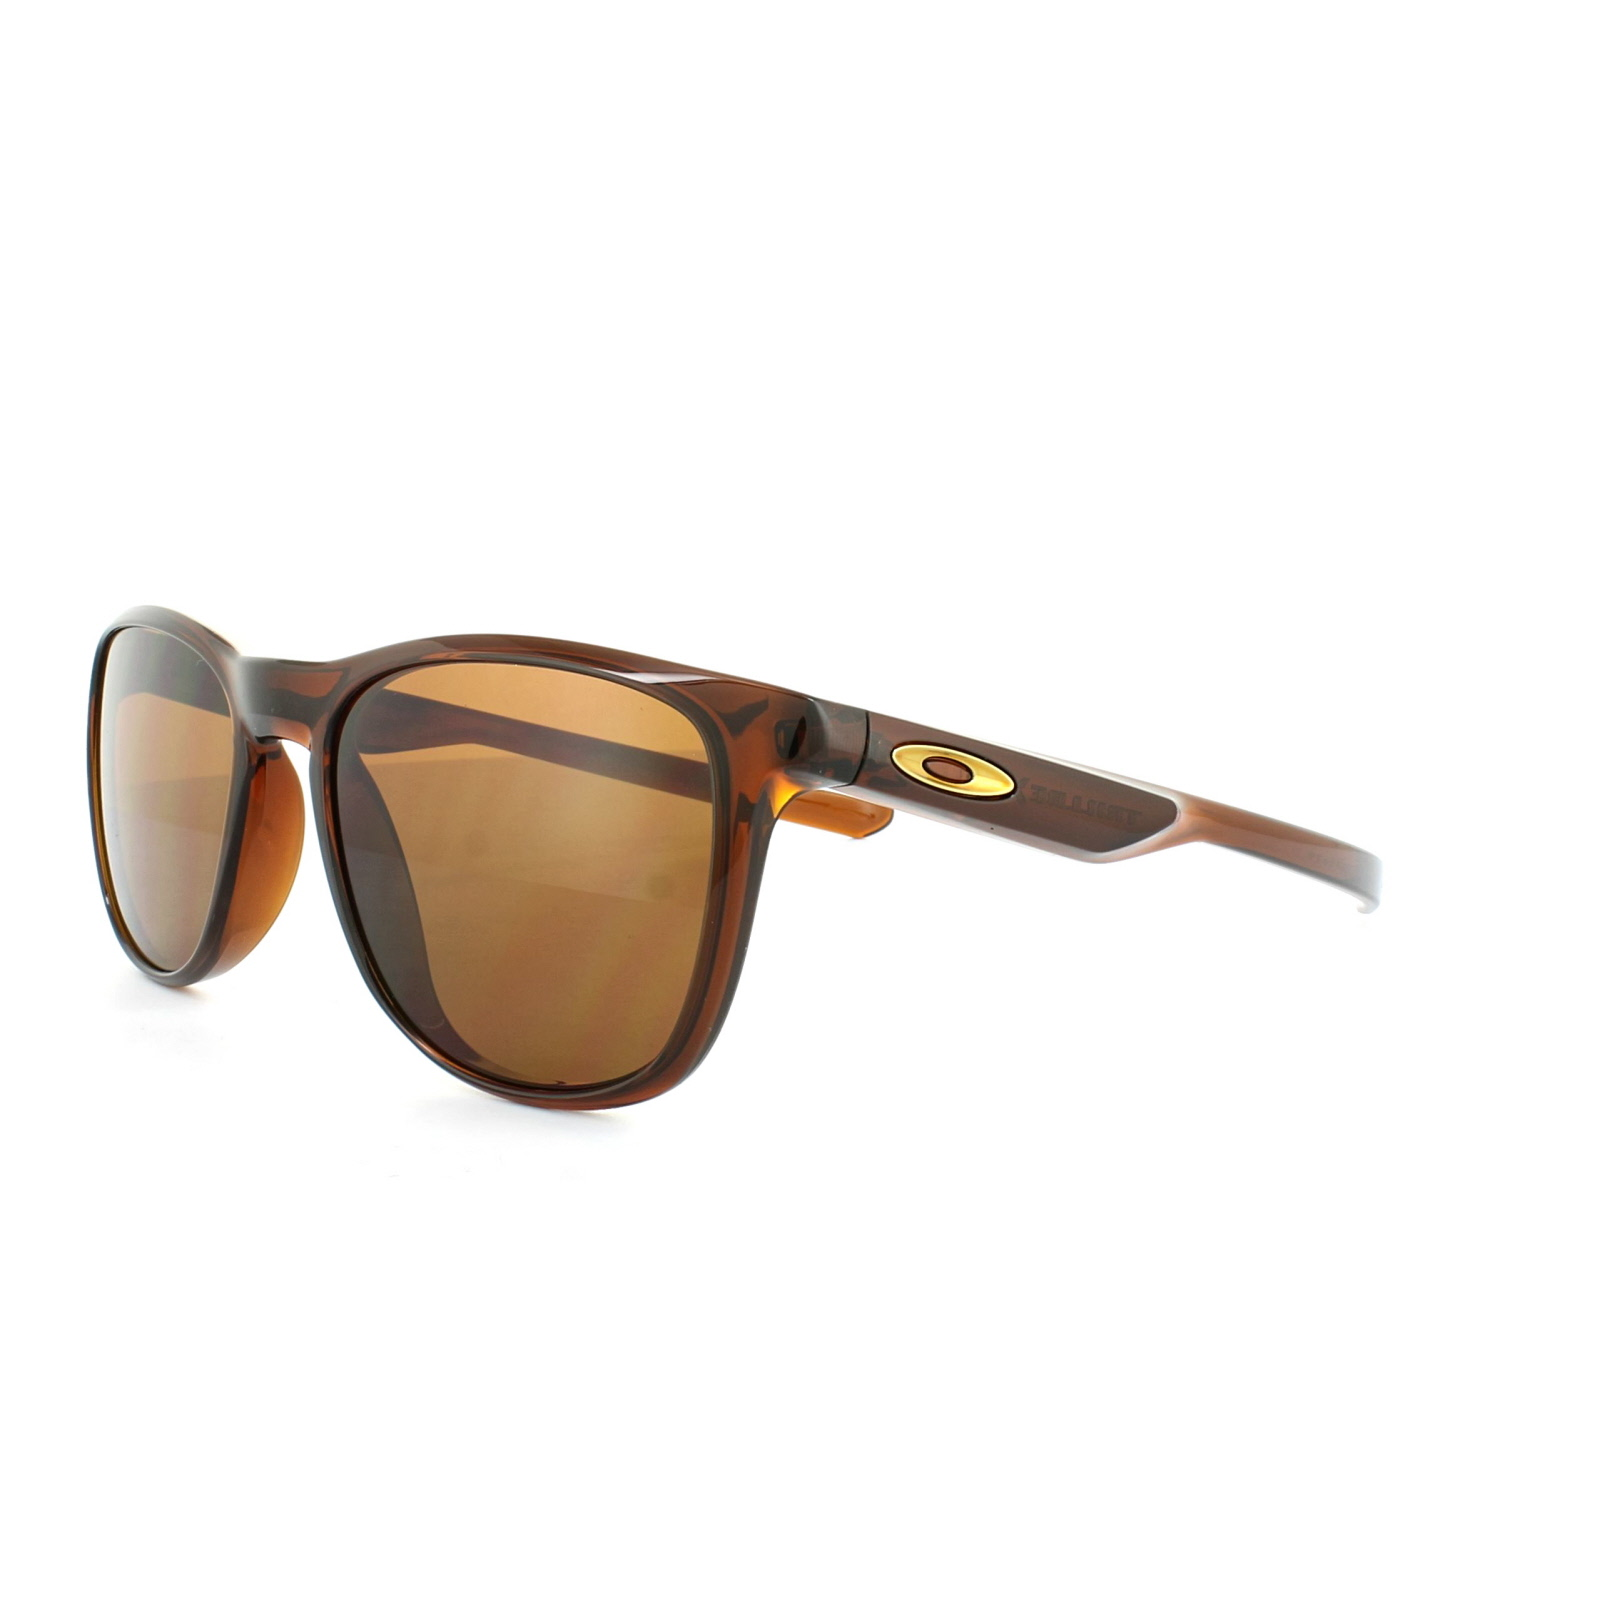 ff0ced49cb2 Cheap Oakley Sunglasses - Discounted Sunglasses